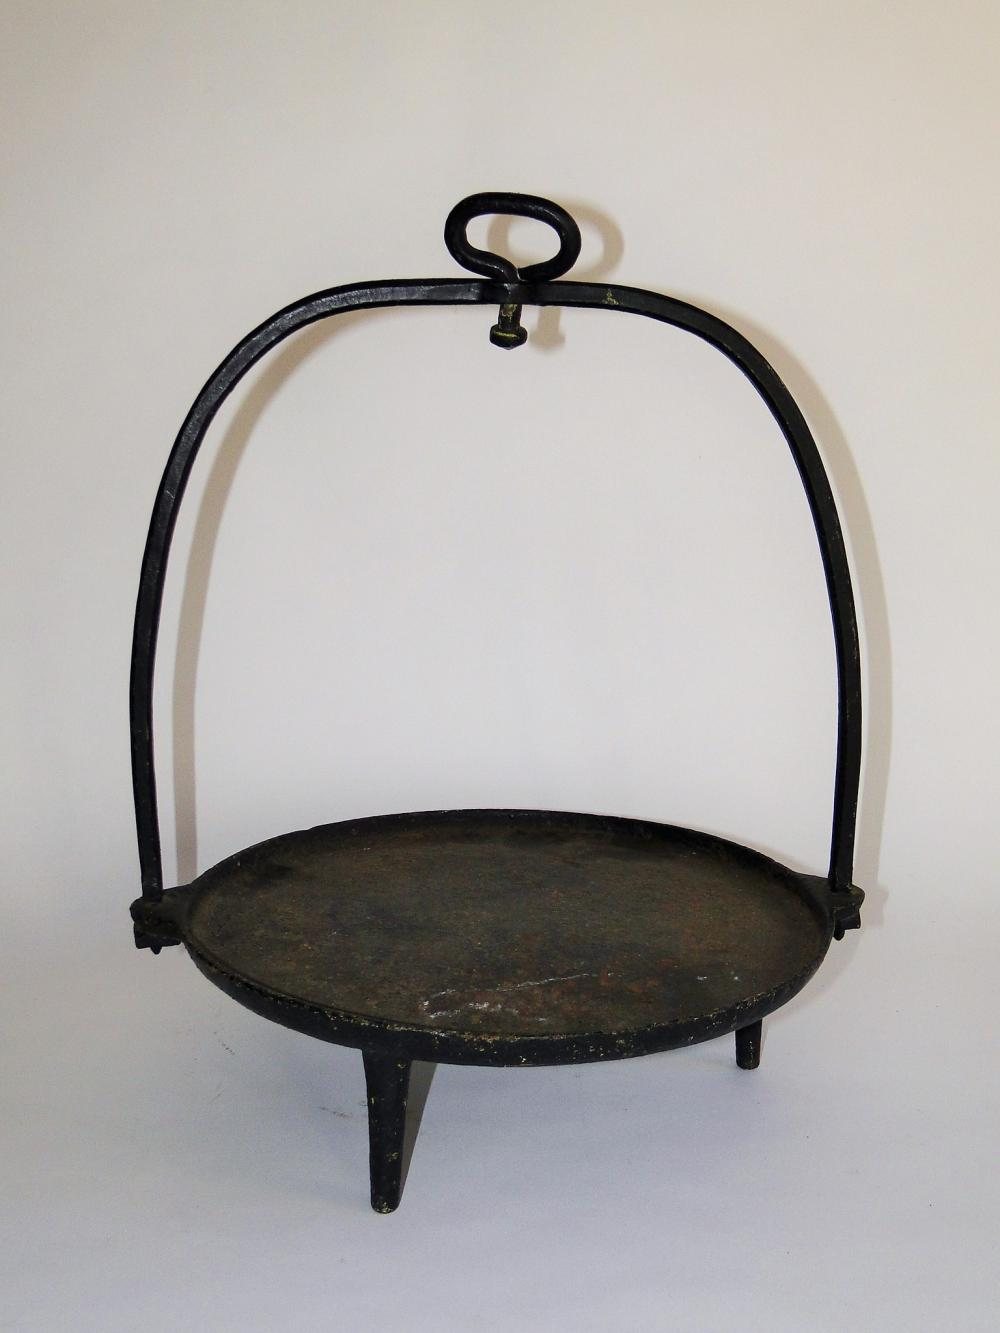 18TH C IRON FORGED GRIDDLE